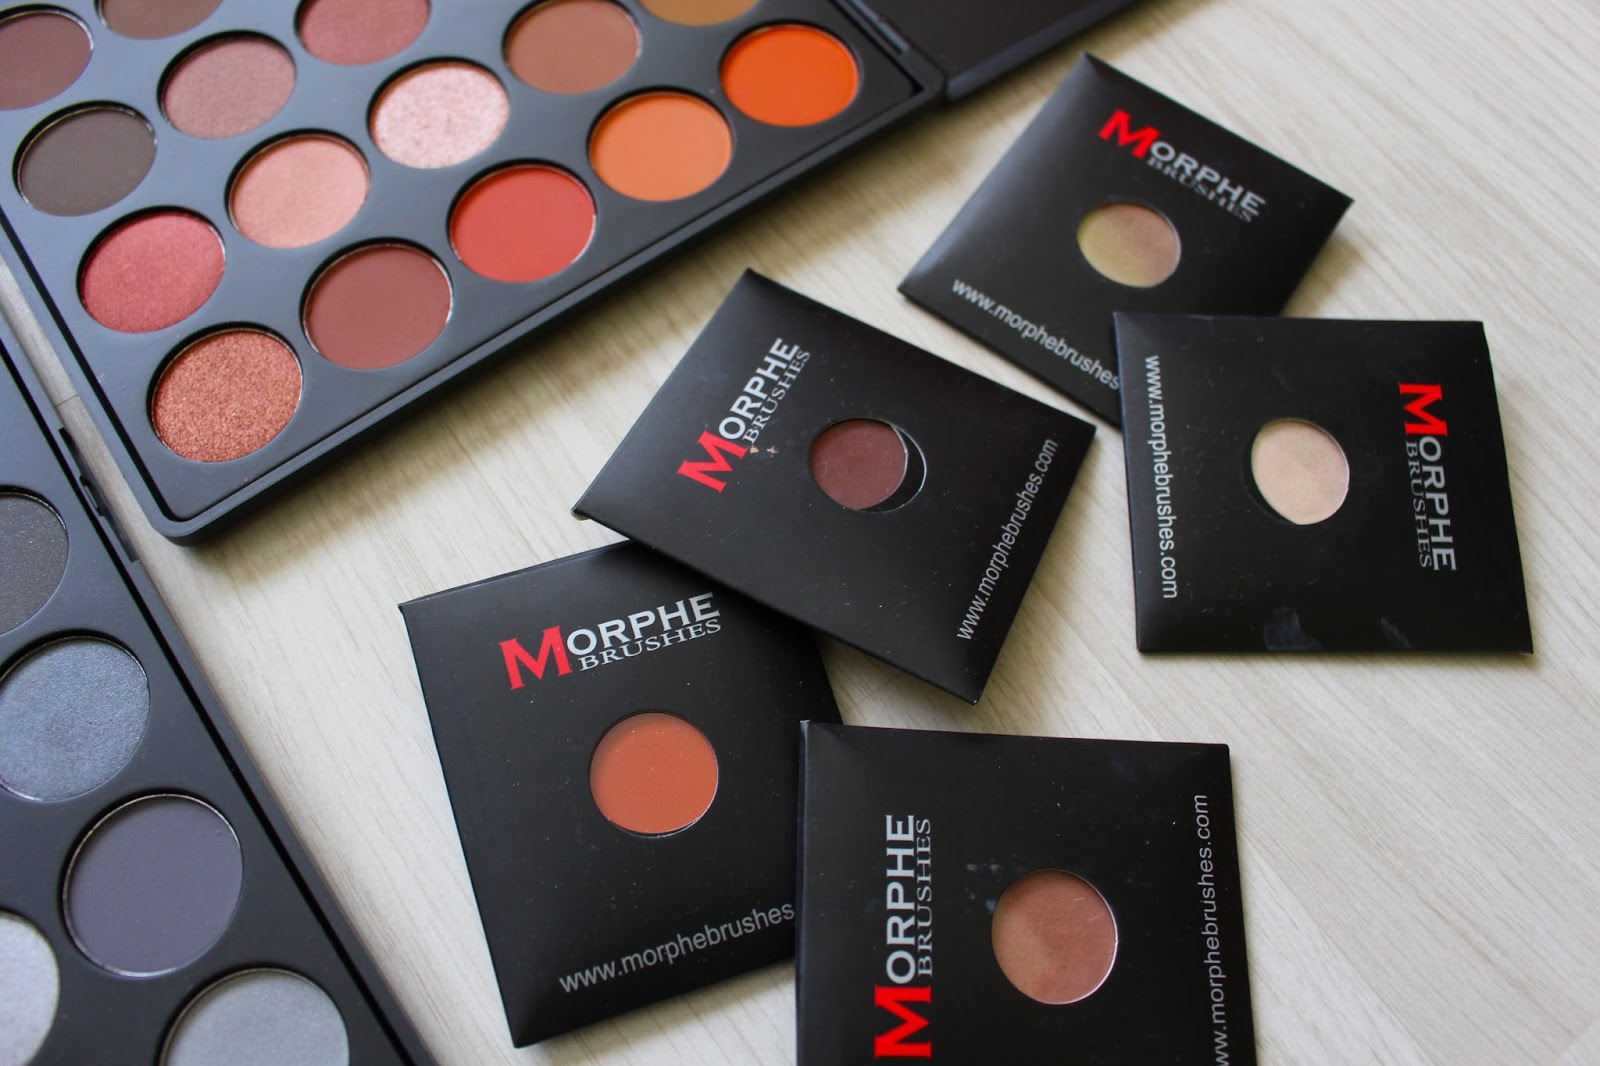 morphe brushes single eyeshadows